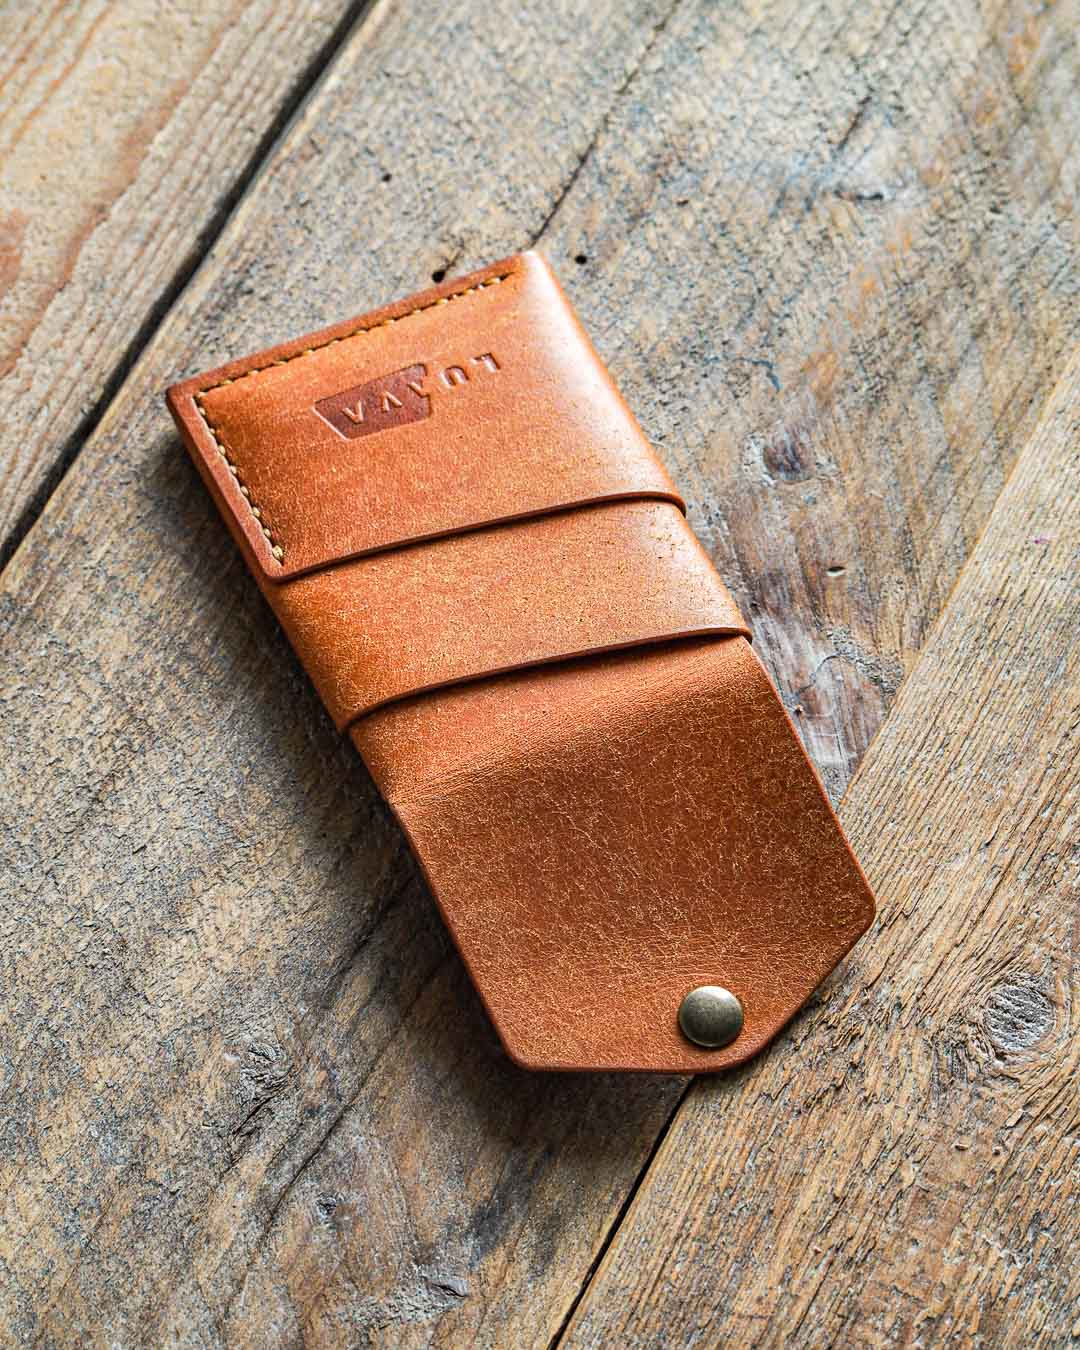 Luava handmade leather wallet handcrafted card holder cardholder made in finland overfold badalassi carlo pueblo cognac back open angle